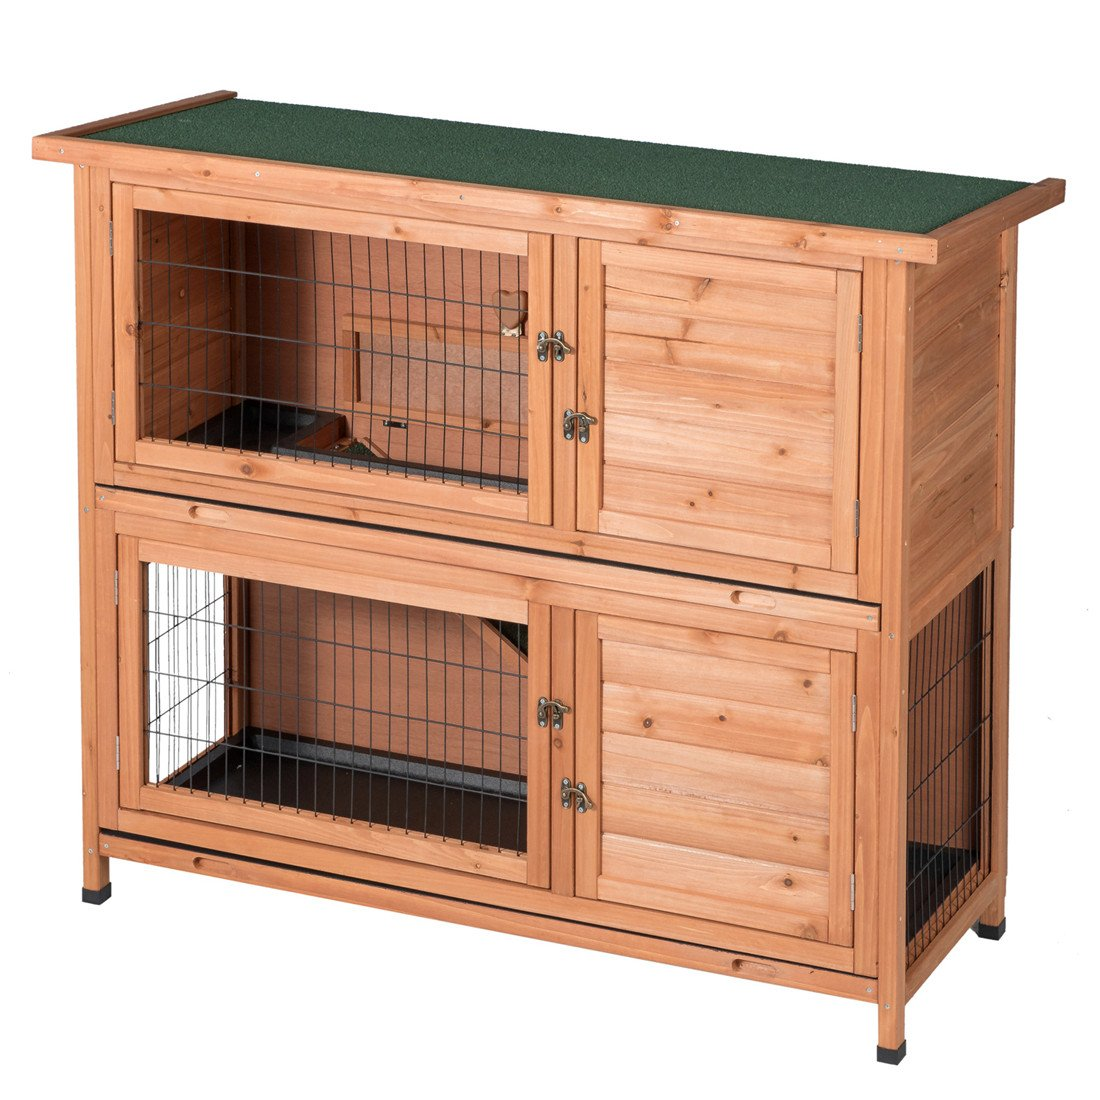 Two Floors Wooden Outdoor Indoor Bunny Hutch Rabbit Cage Guinea Pig Coop PET House for Small Animals Nature Color PET383